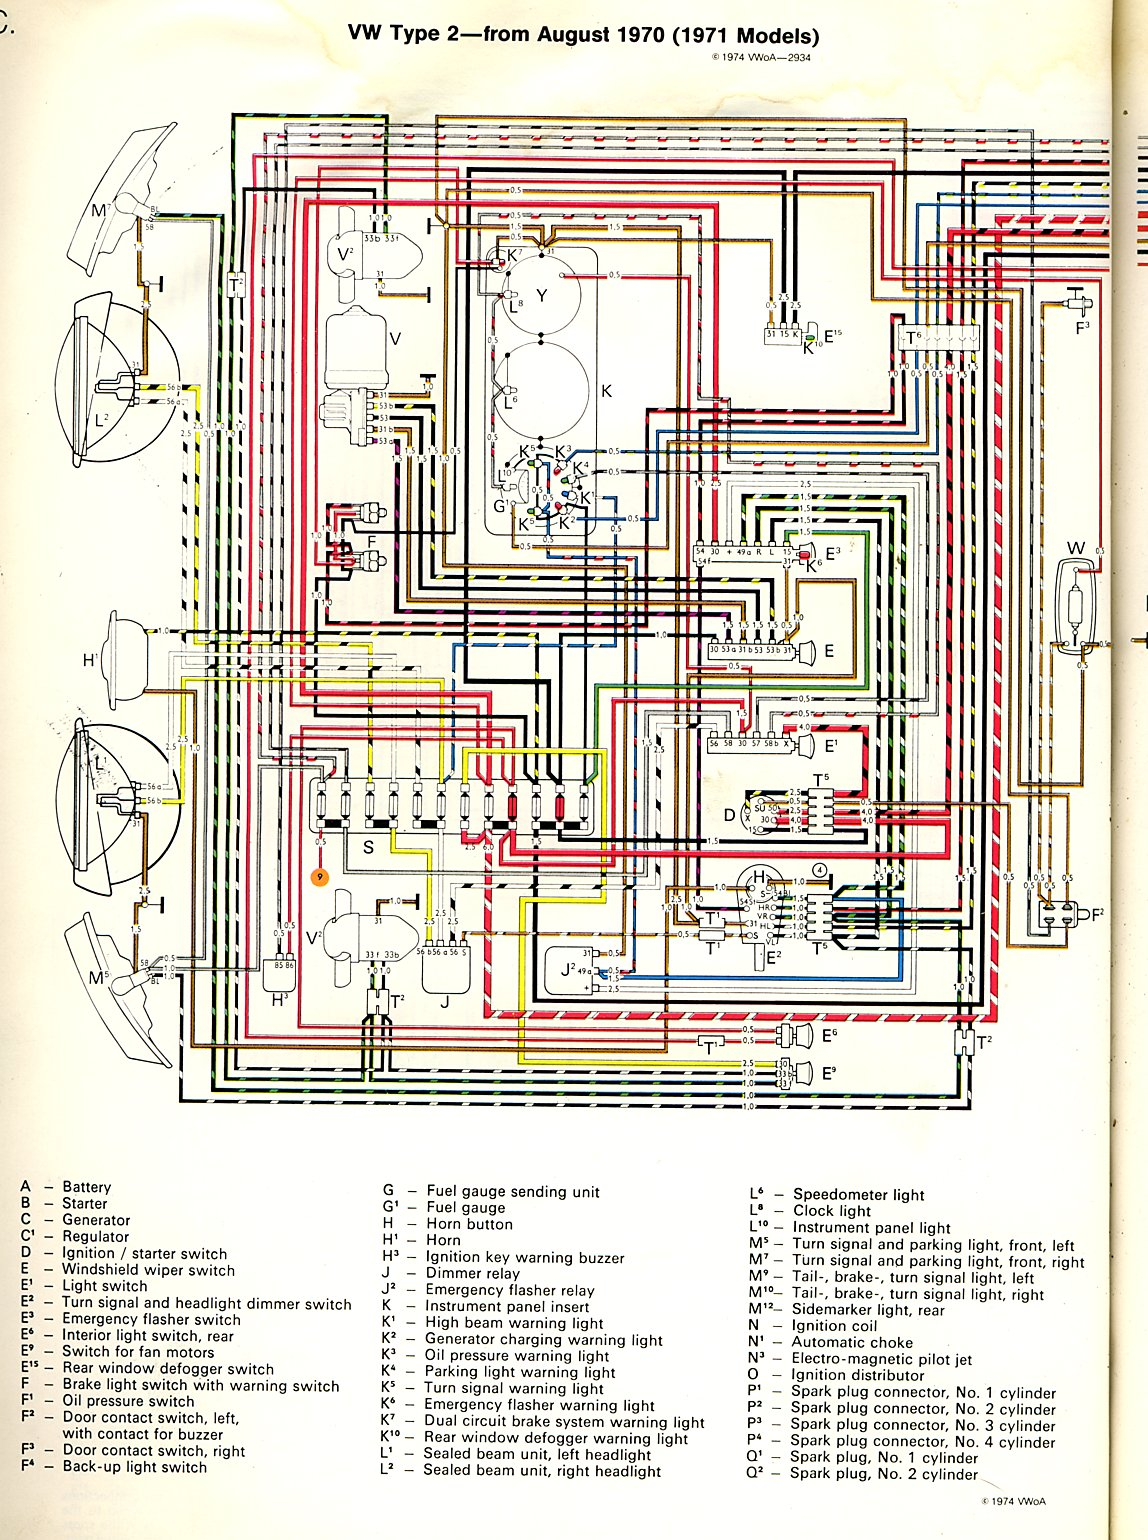 1971 bus wiring diagram. Black Bedroom Furniture Sets. Home Design Ideas